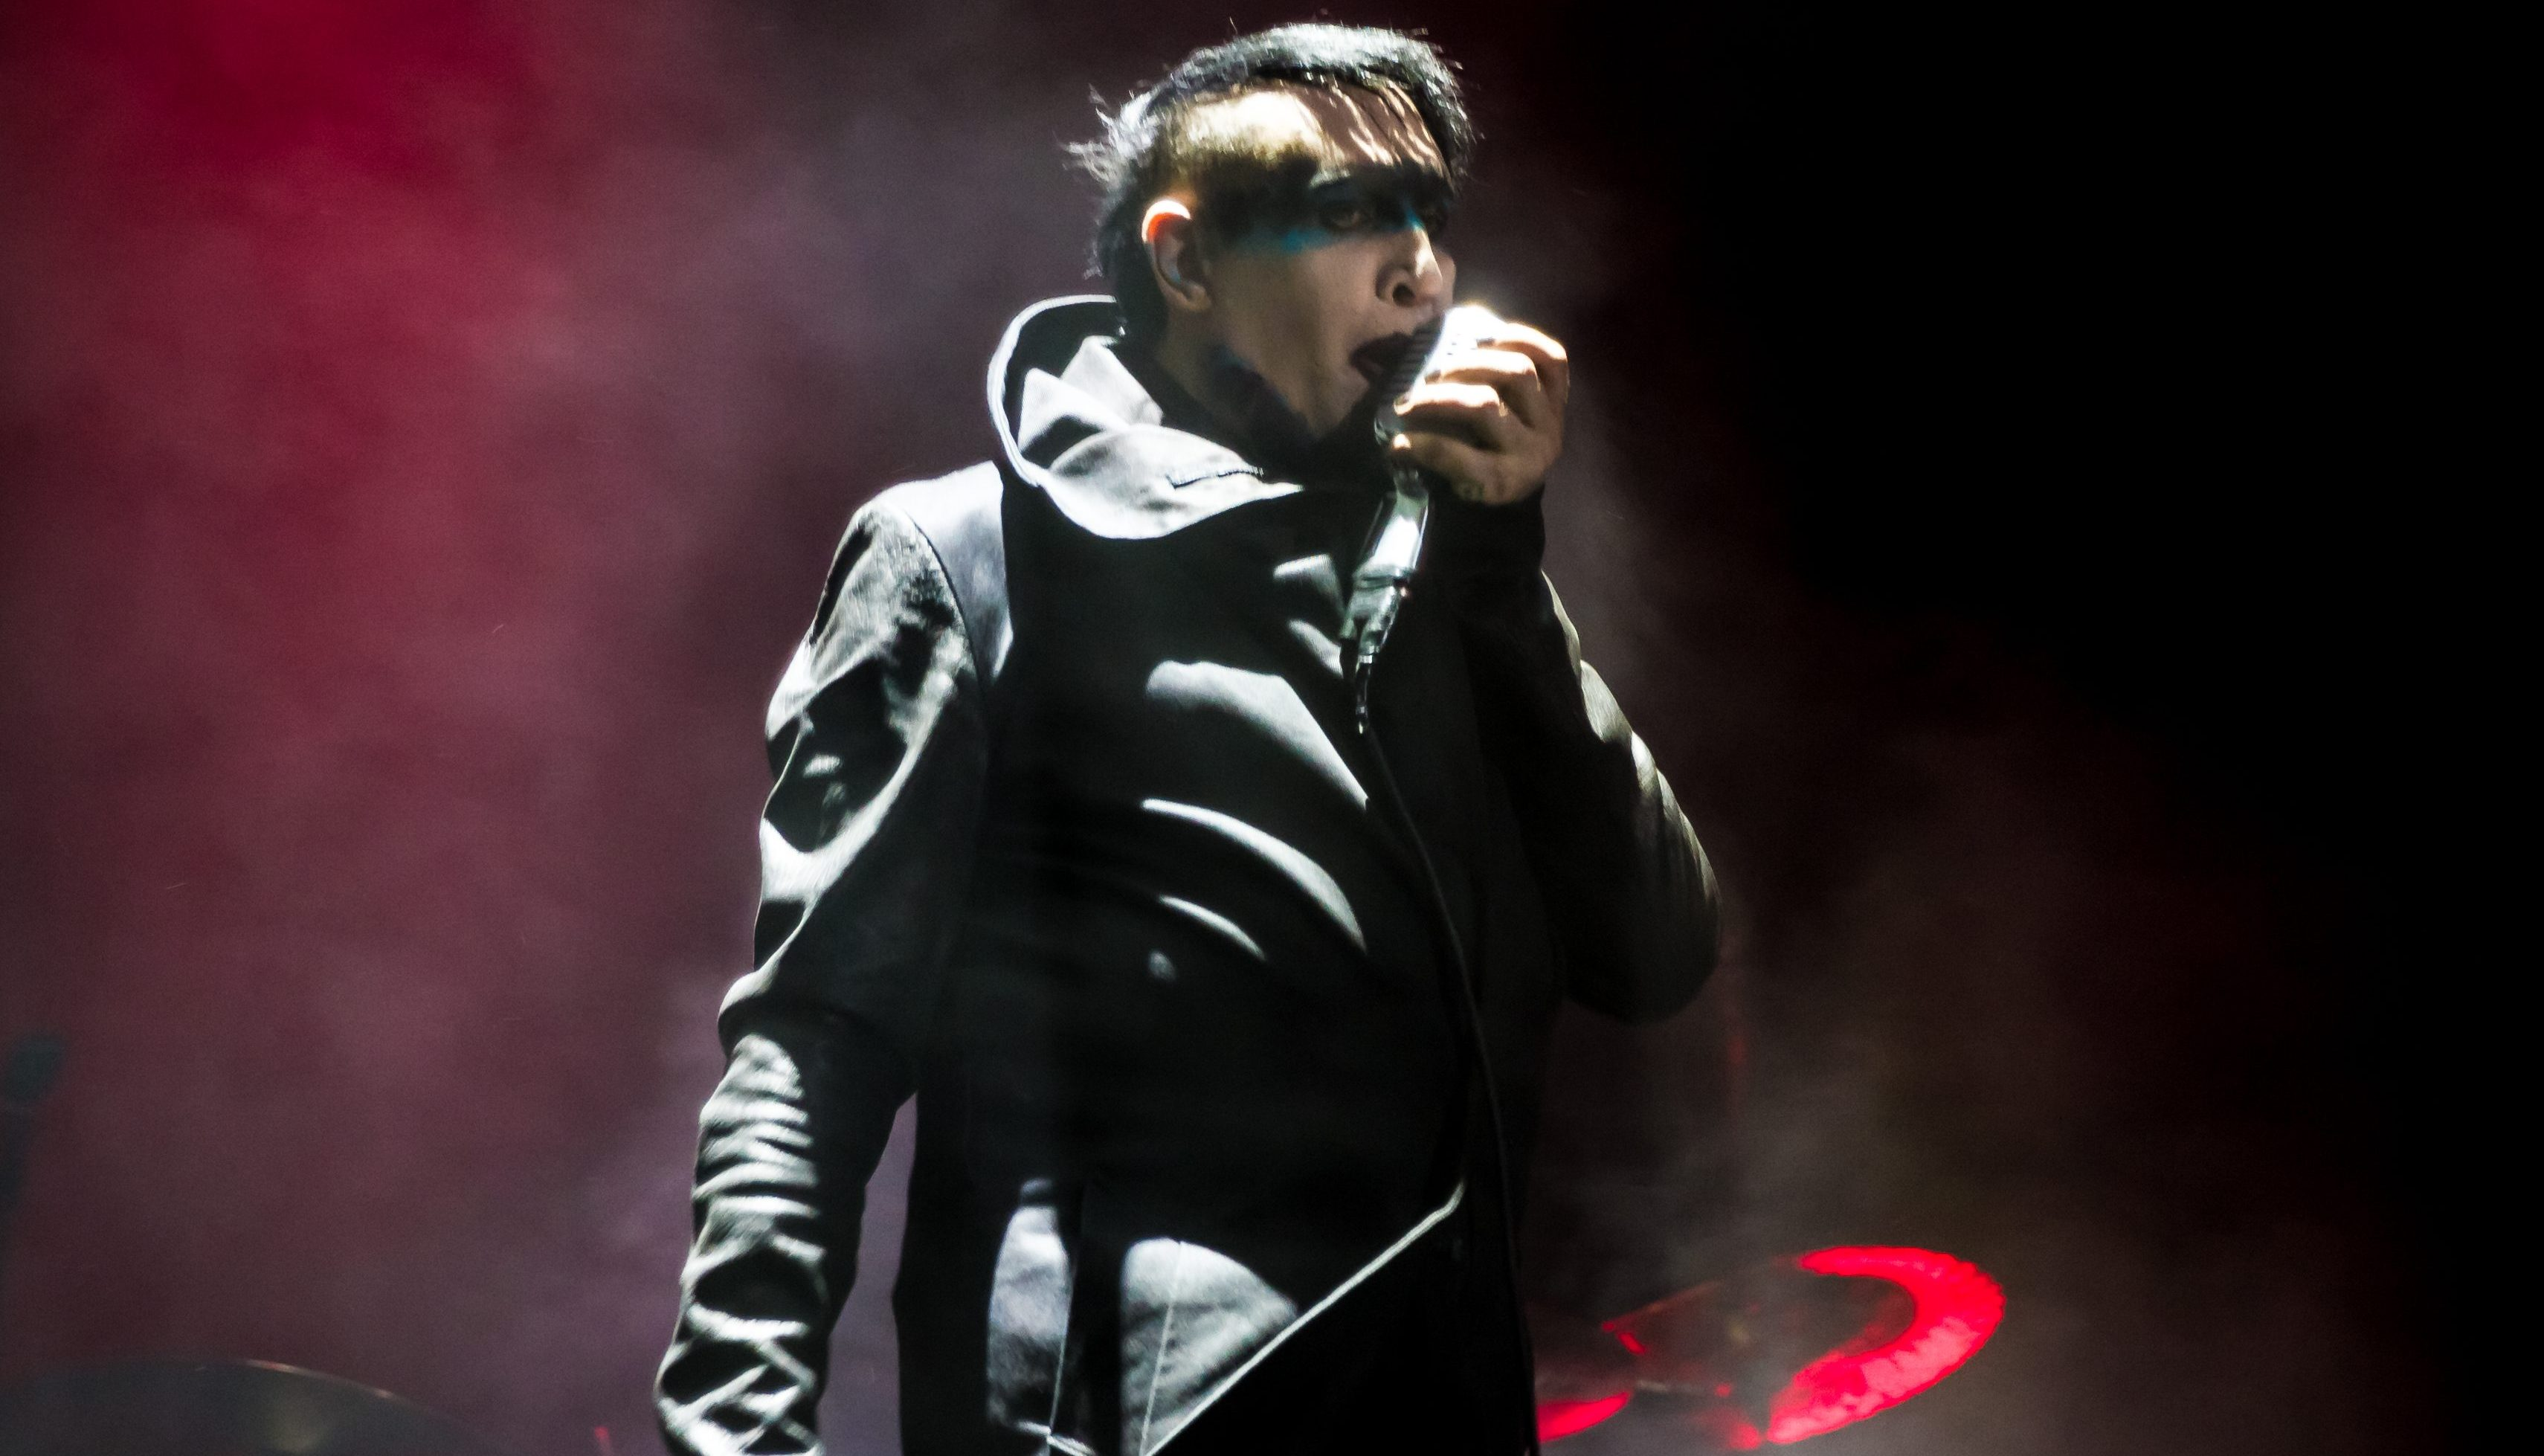 marilyn manson crushed by stage prop cuts new york show short. Black Bedroom Furniture Sets. Home Design Ideas